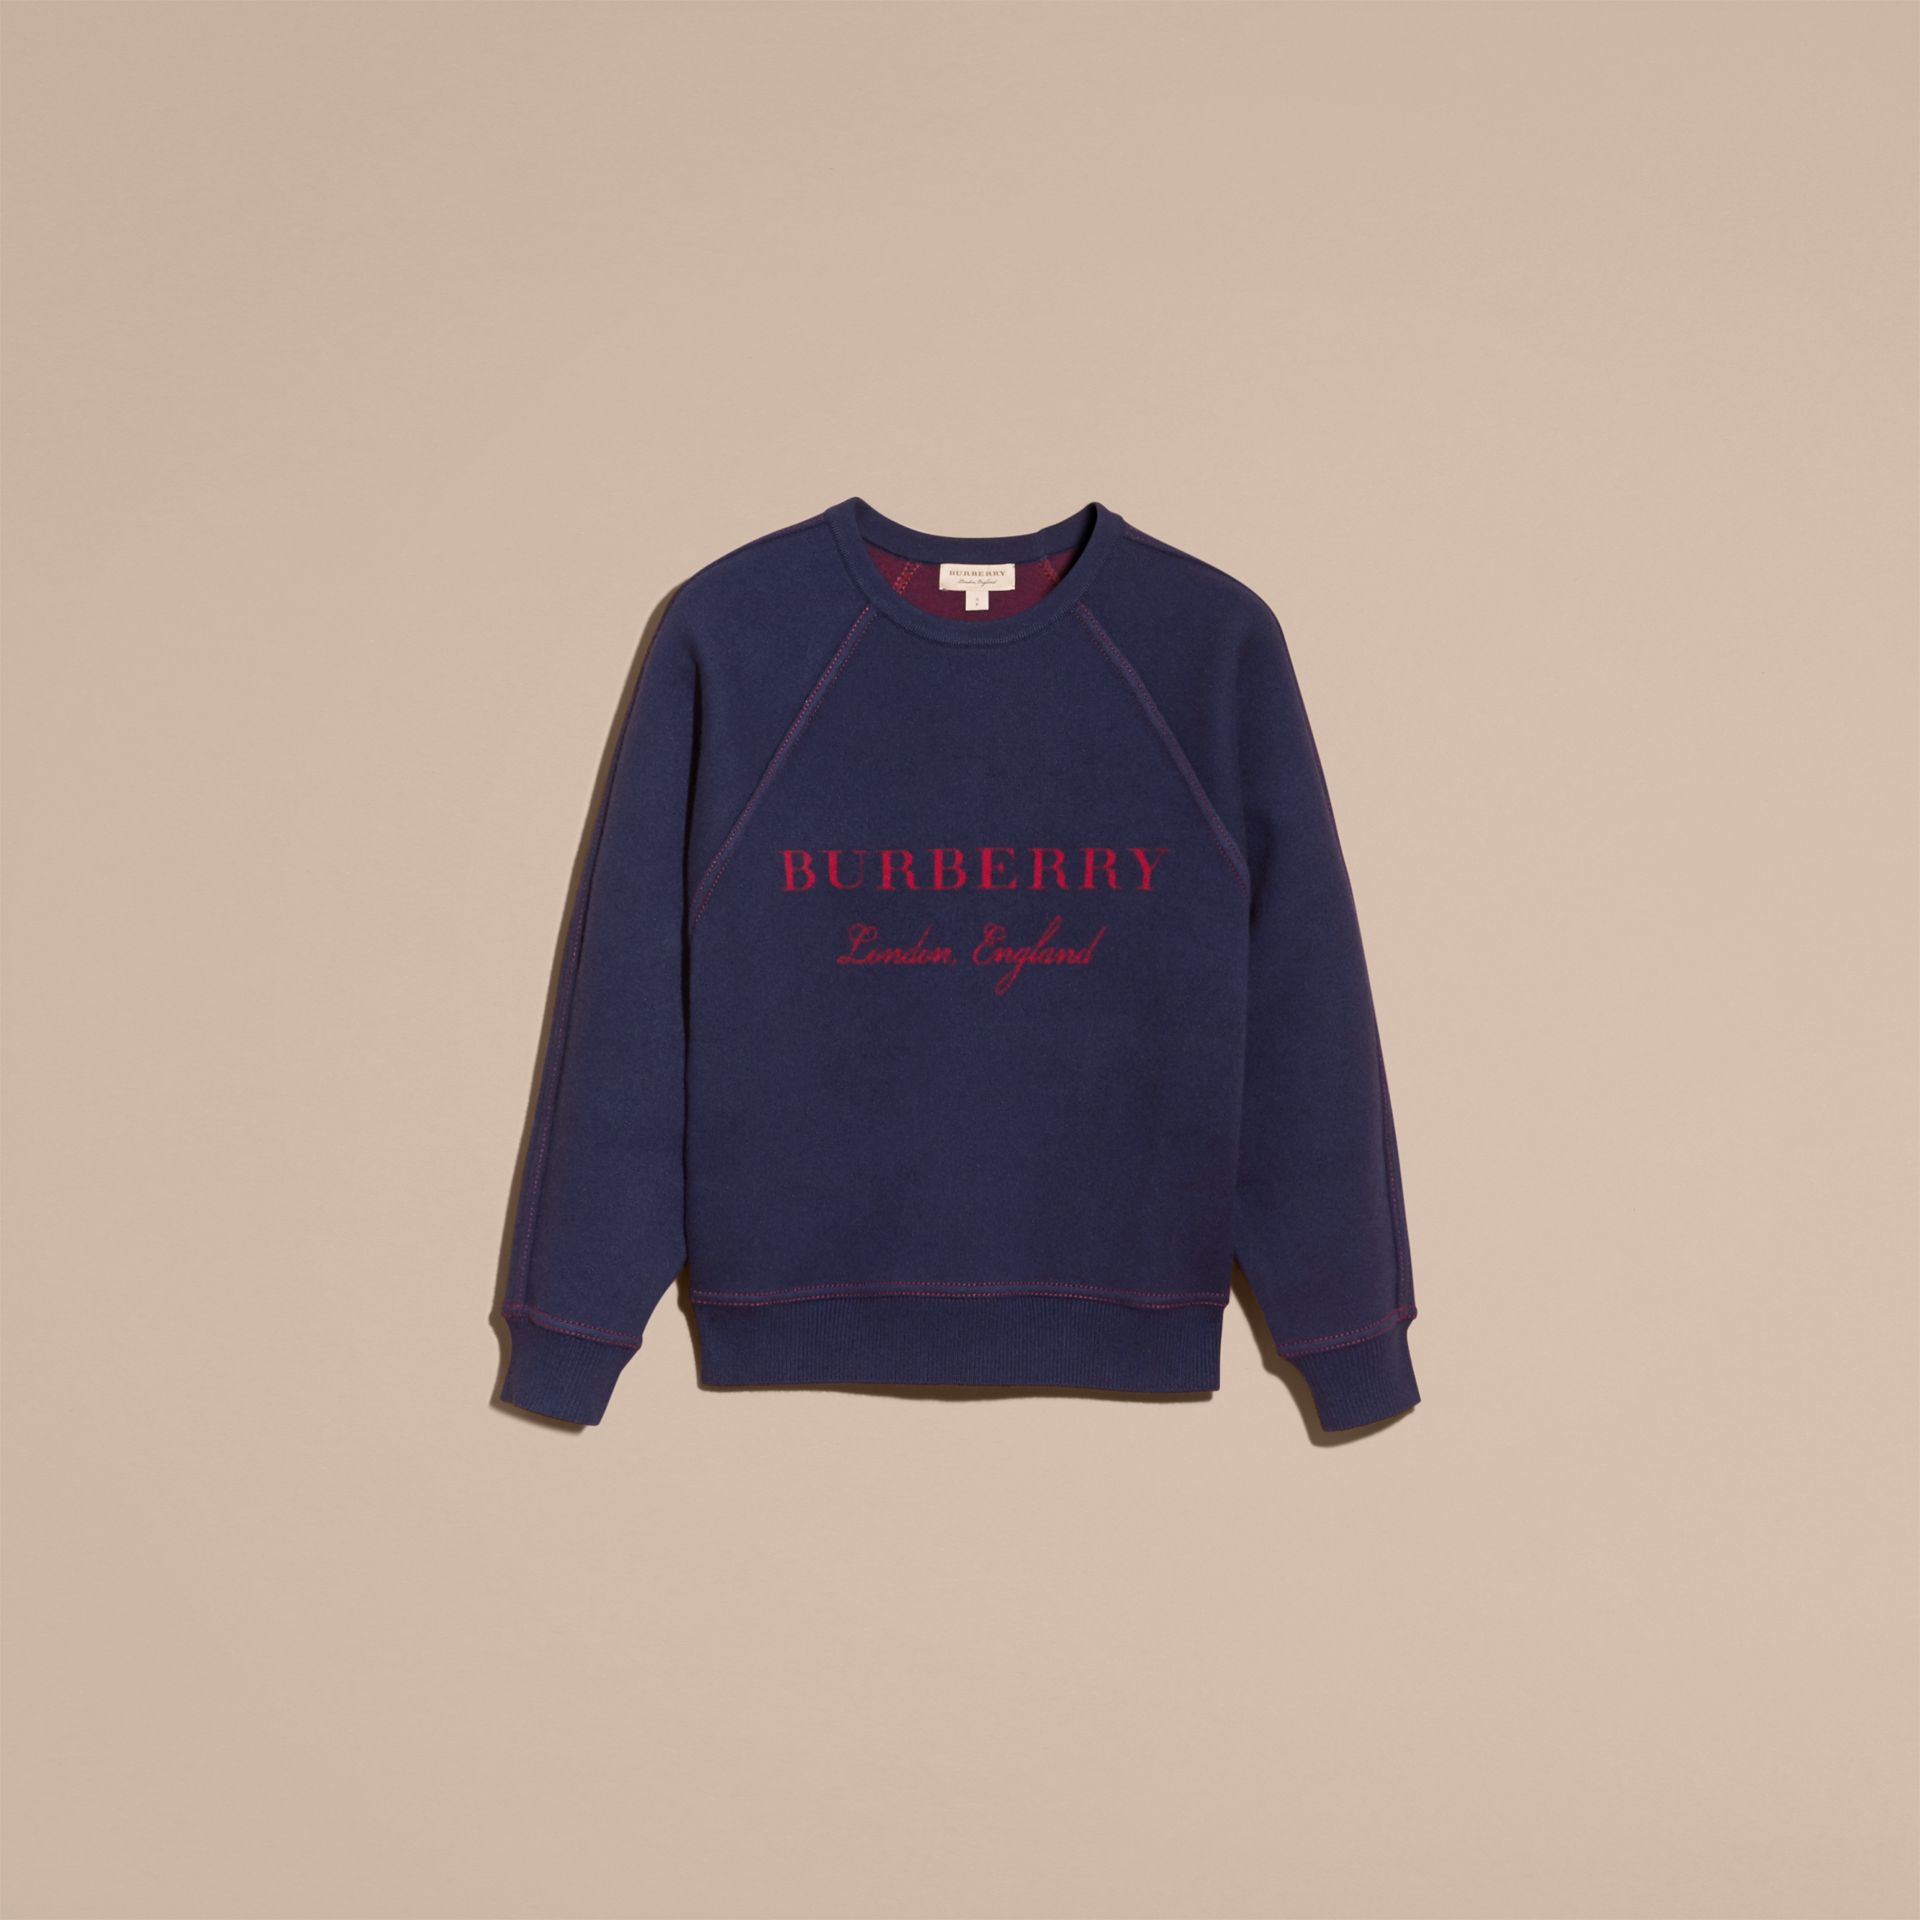 Topstitch Detail Wool Cashmere Blend Sweater in Navy - Women | Burberry - gallery image 4